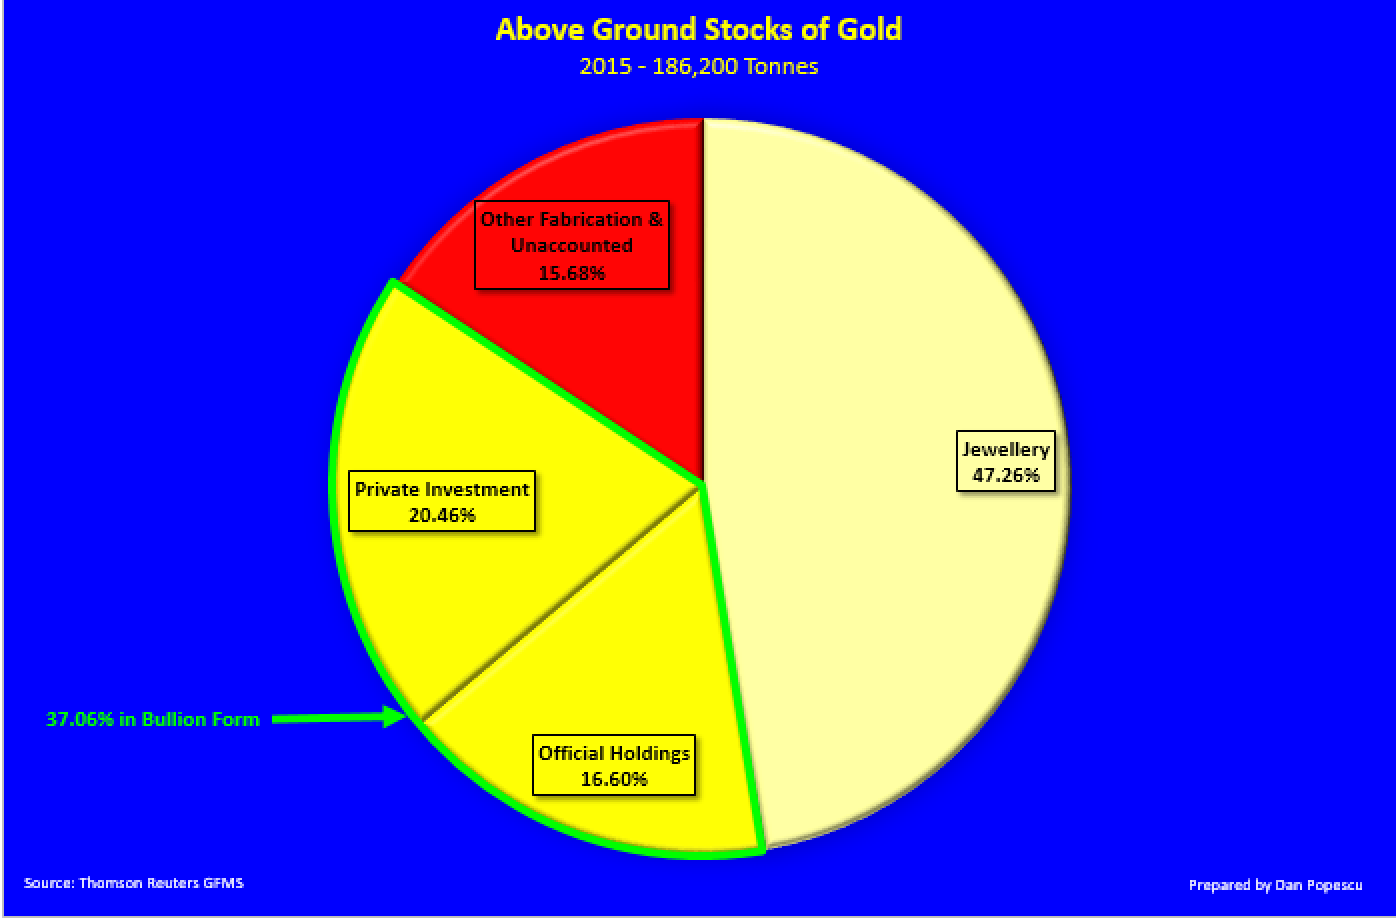 Above ground stocks of gold